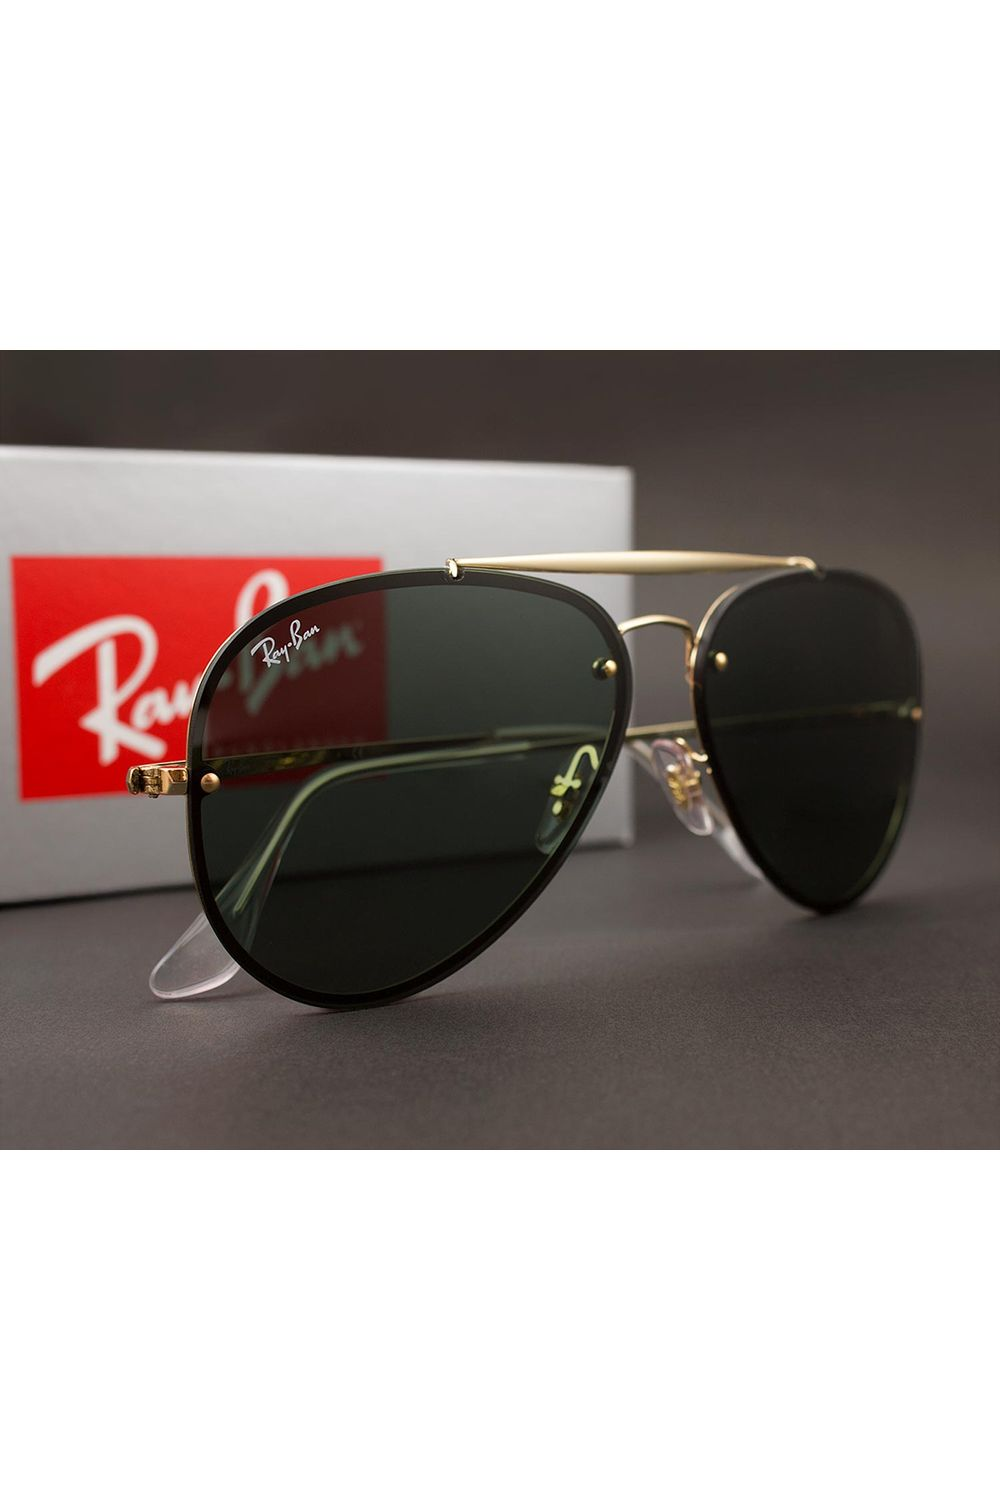 Óculos de Sol Ray Ban Blaze Aviador RB3584N 9050 71-61   Products em ... 34b3d0258b